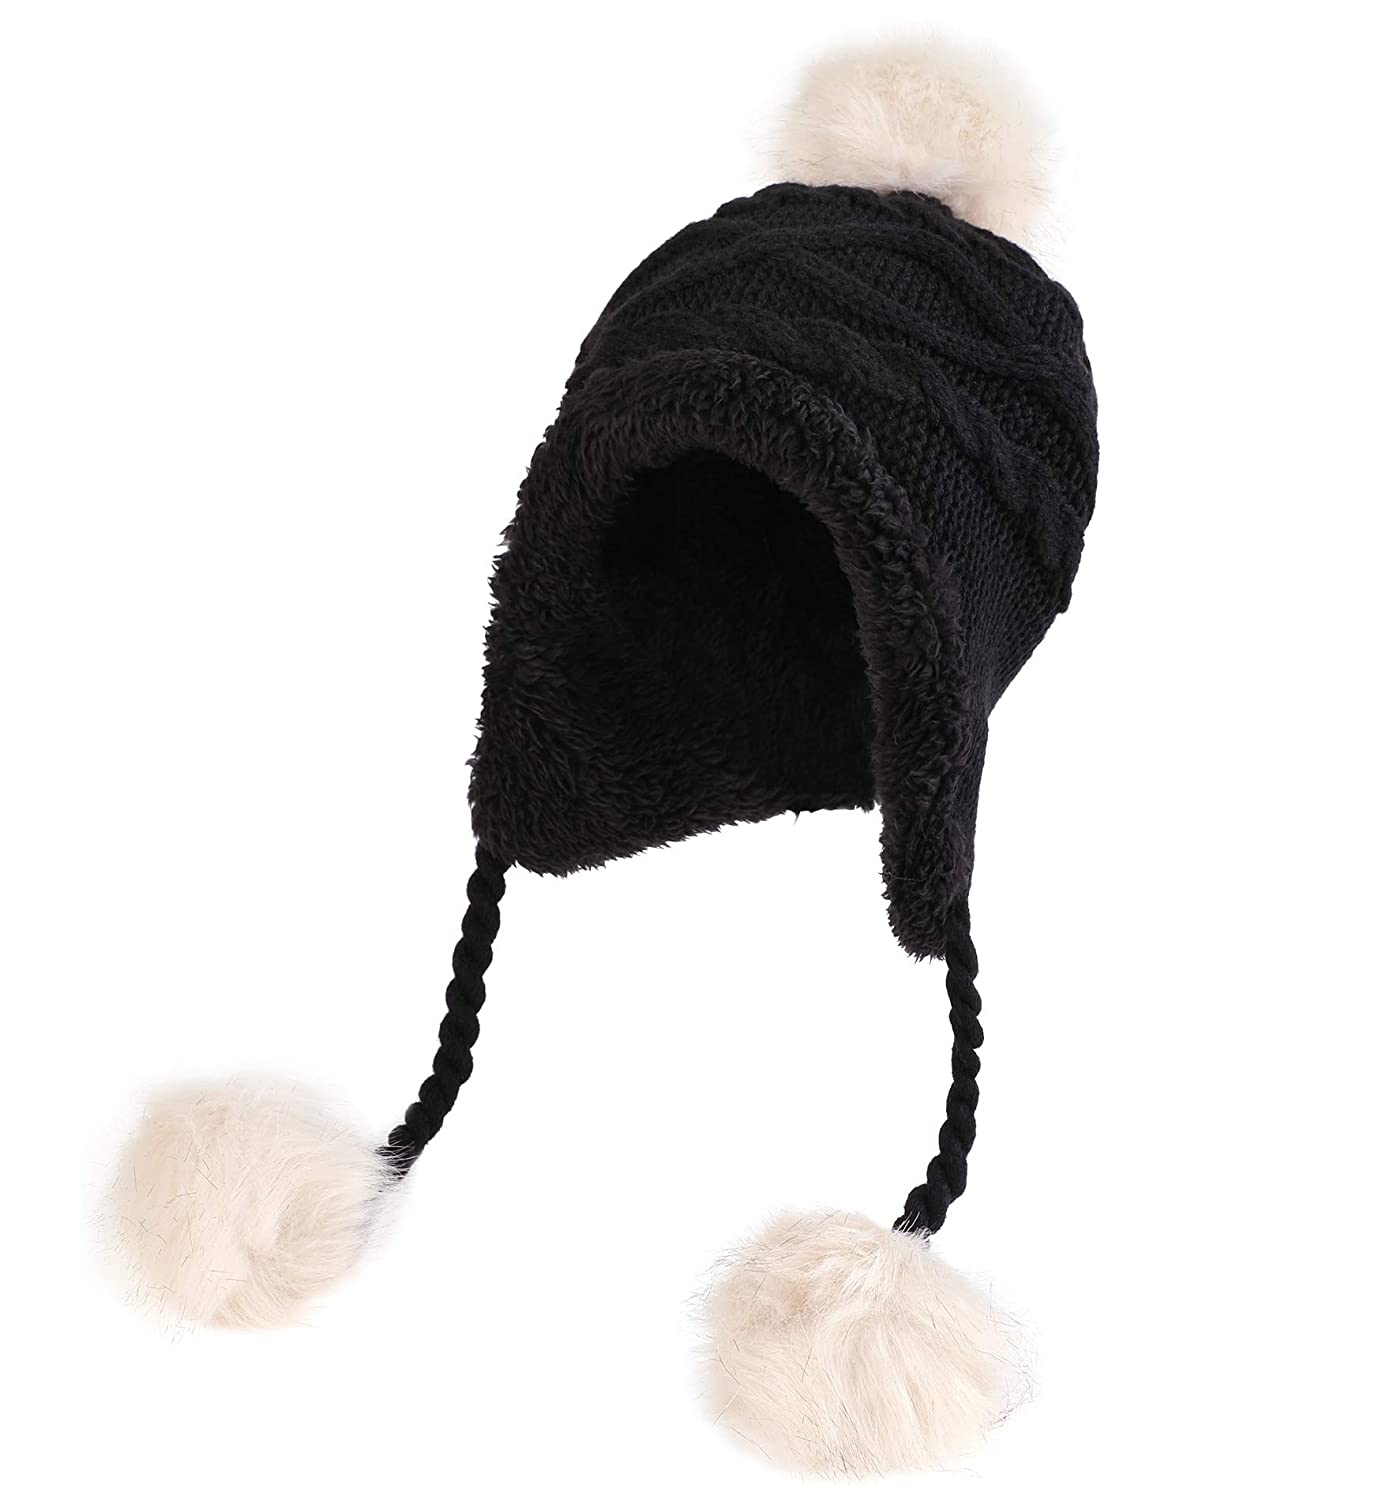 Sumolux Christmas Hat Warm Knitted Pom Stripe Cuff Beanie Stocking Cap for Kids Adult Autumn Winter